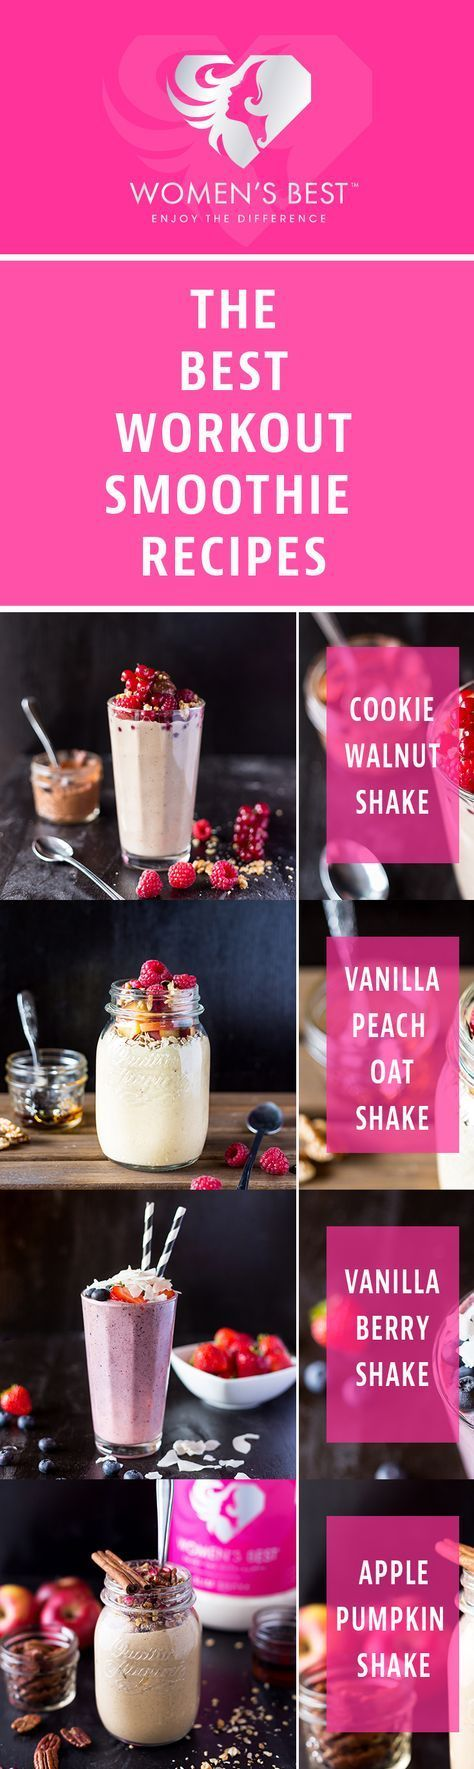 The BEST weight loss shake for women from Women's Best!